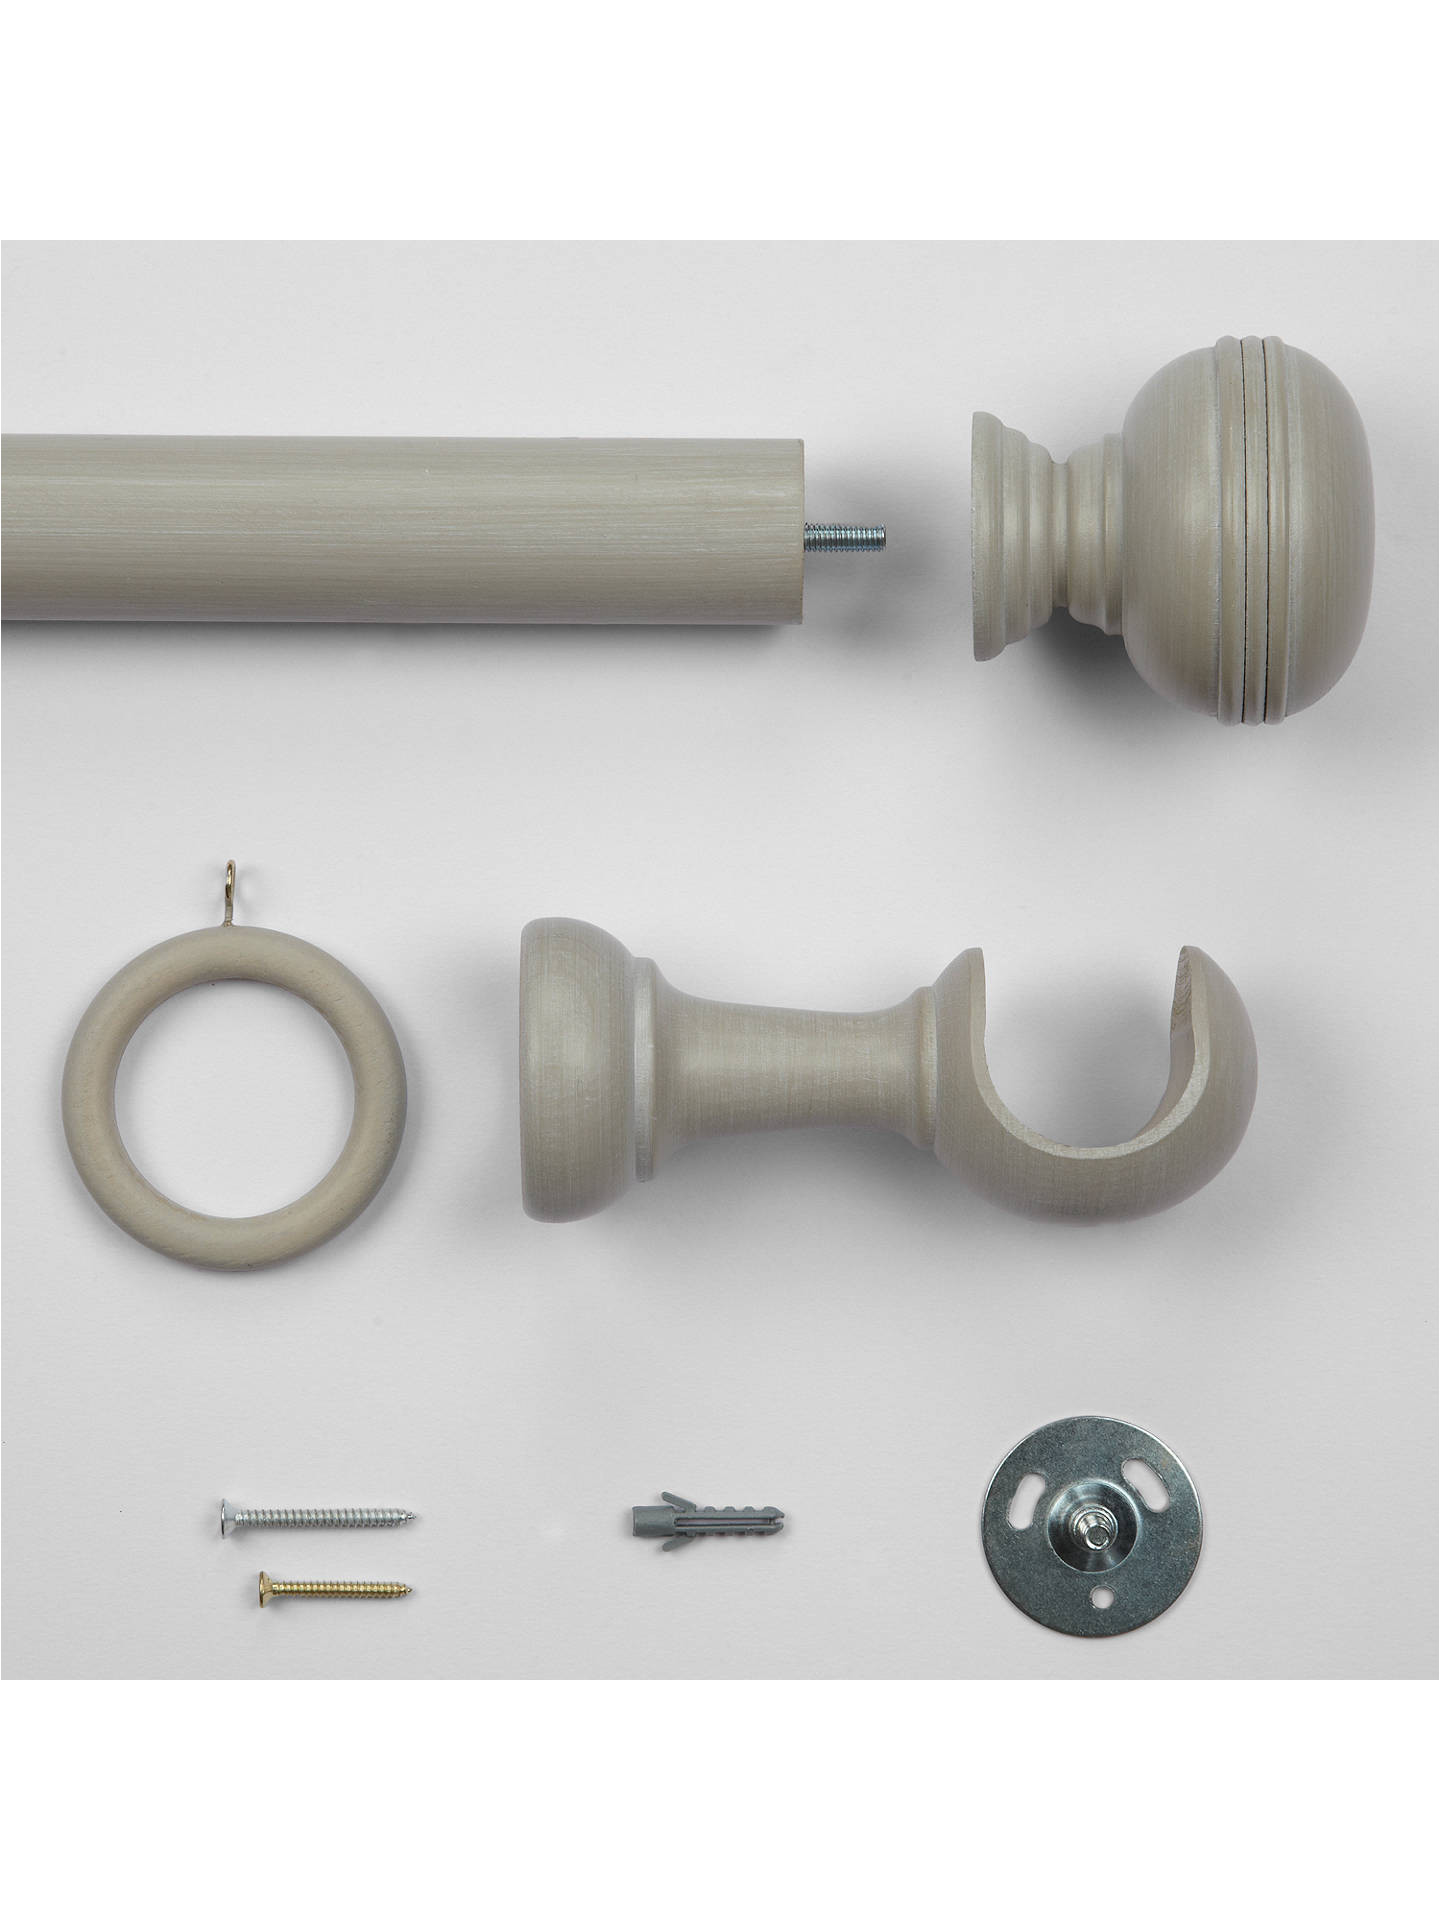 buycroft collection curtain pole kit grey l150cm x dia 35mm online at johnlewis